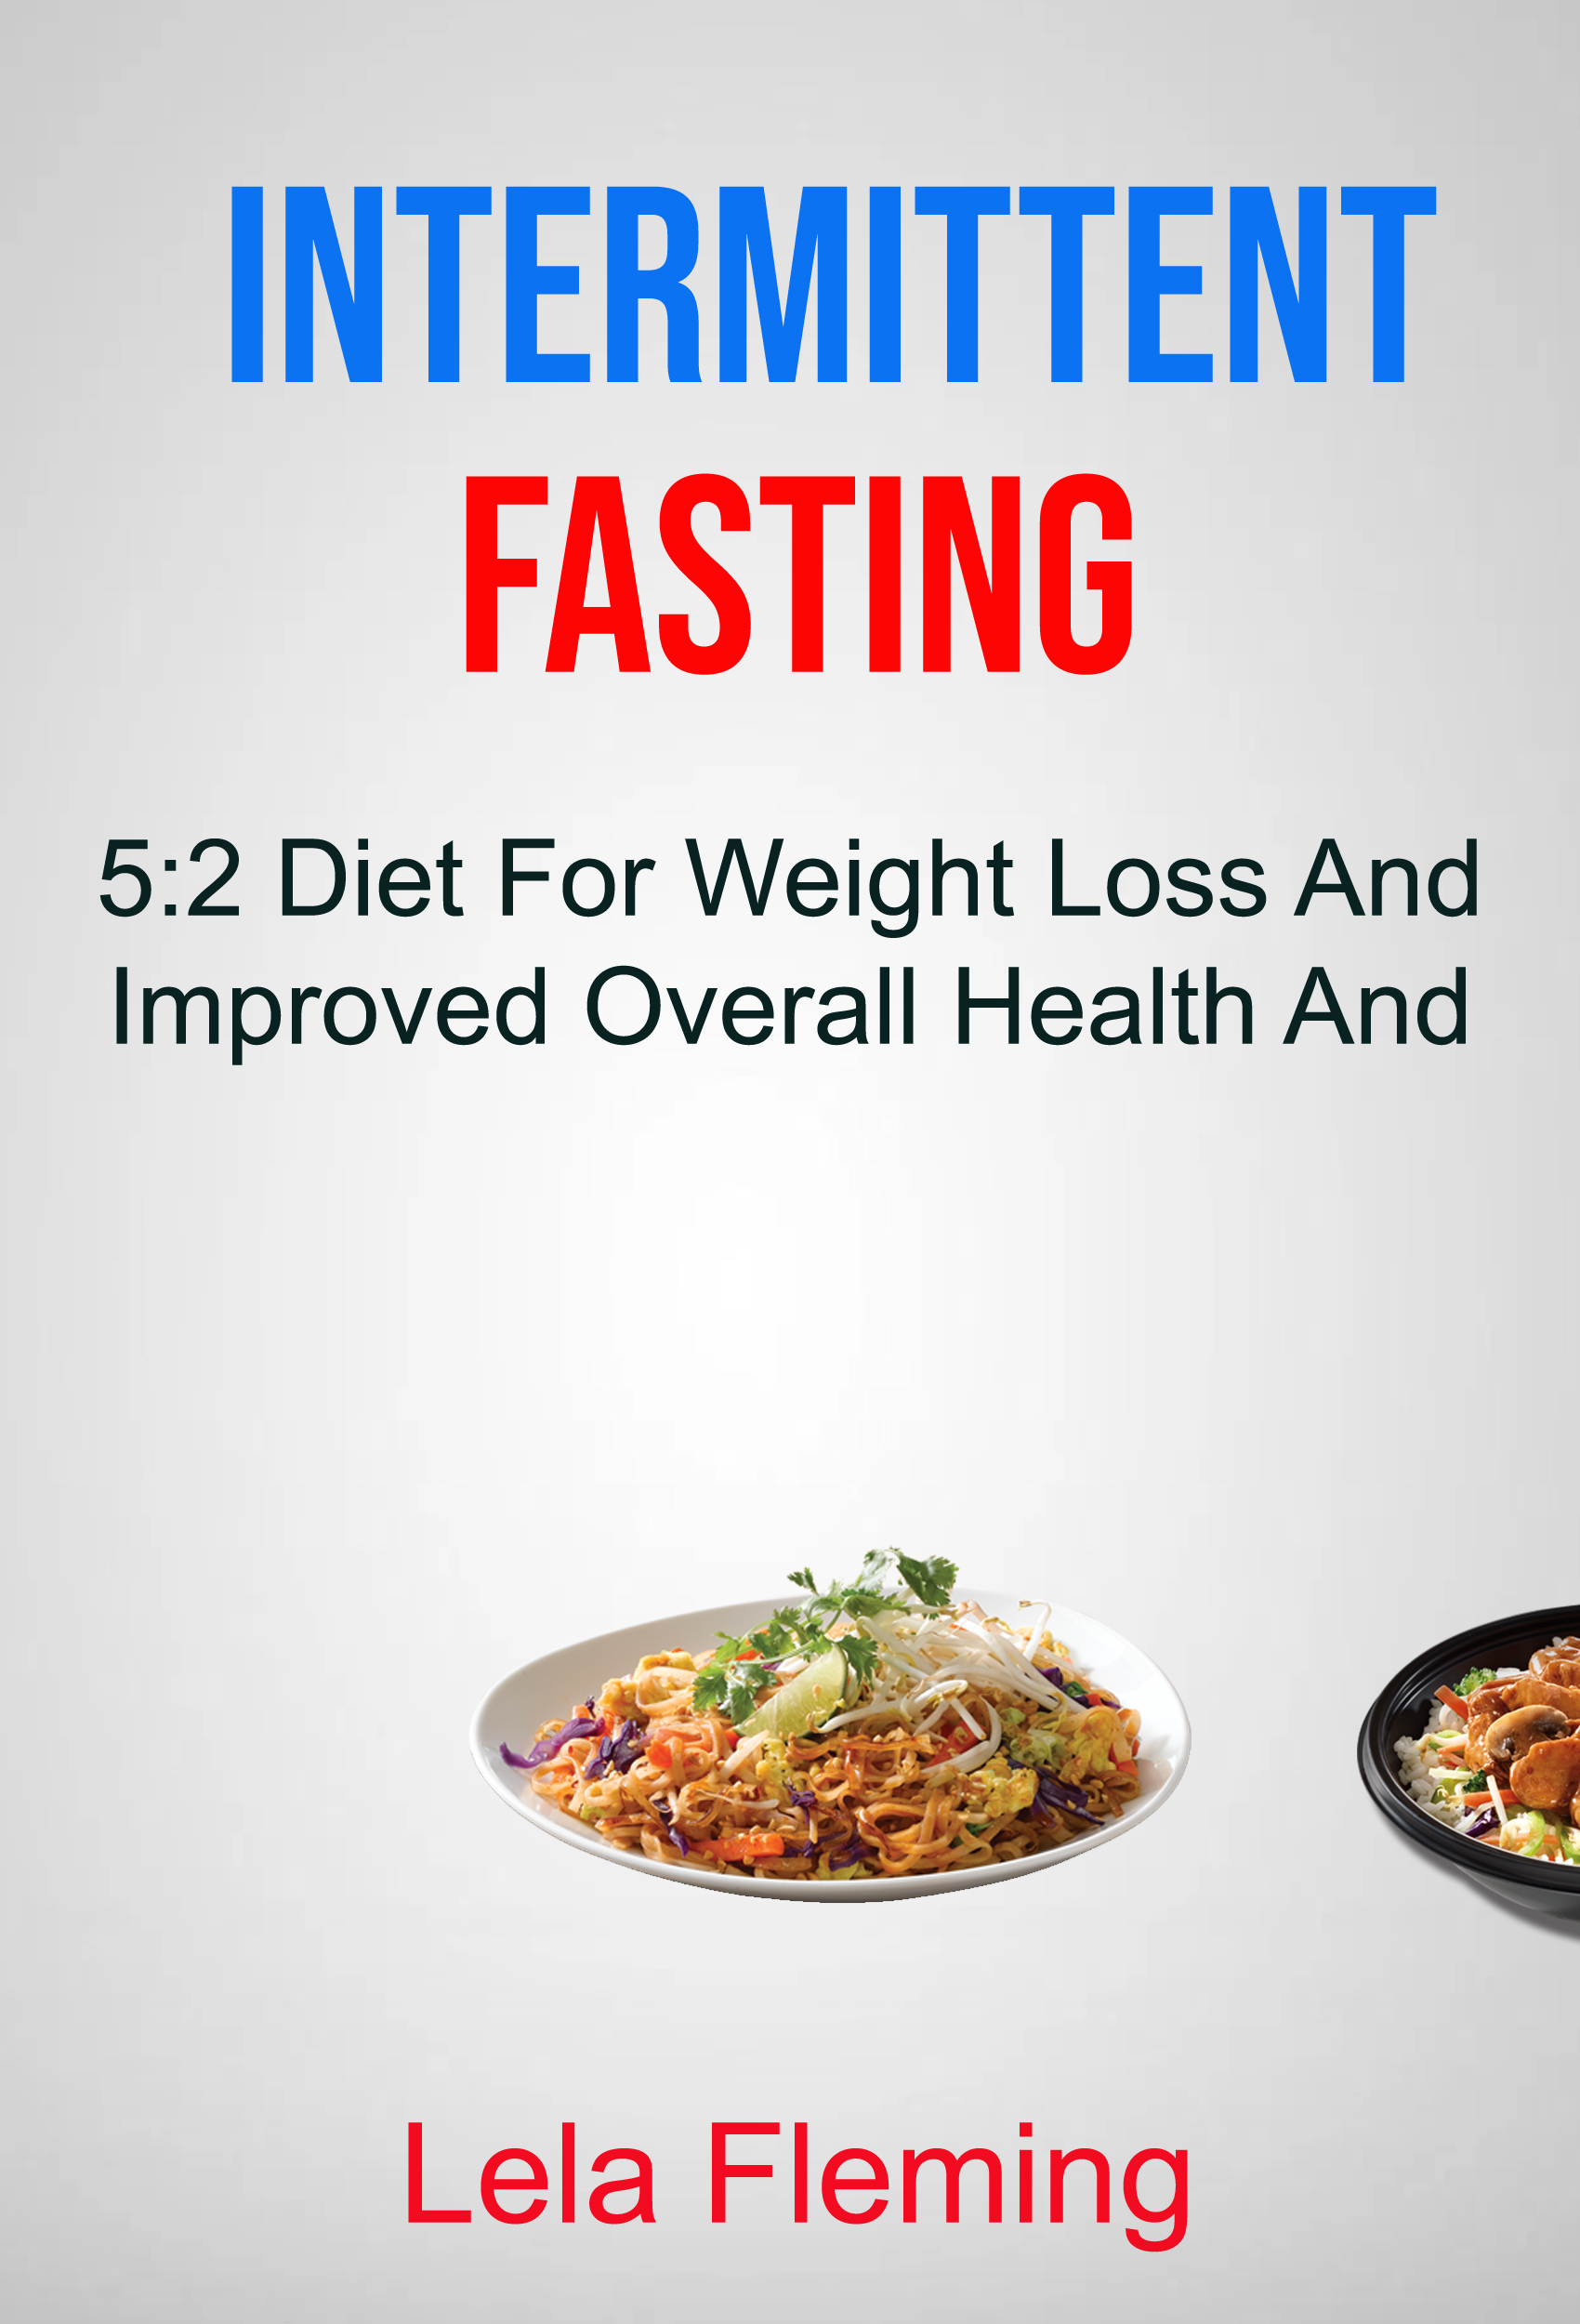 Intermittent fasting: 5:2 diet for weight loss and improved overall health and fitness